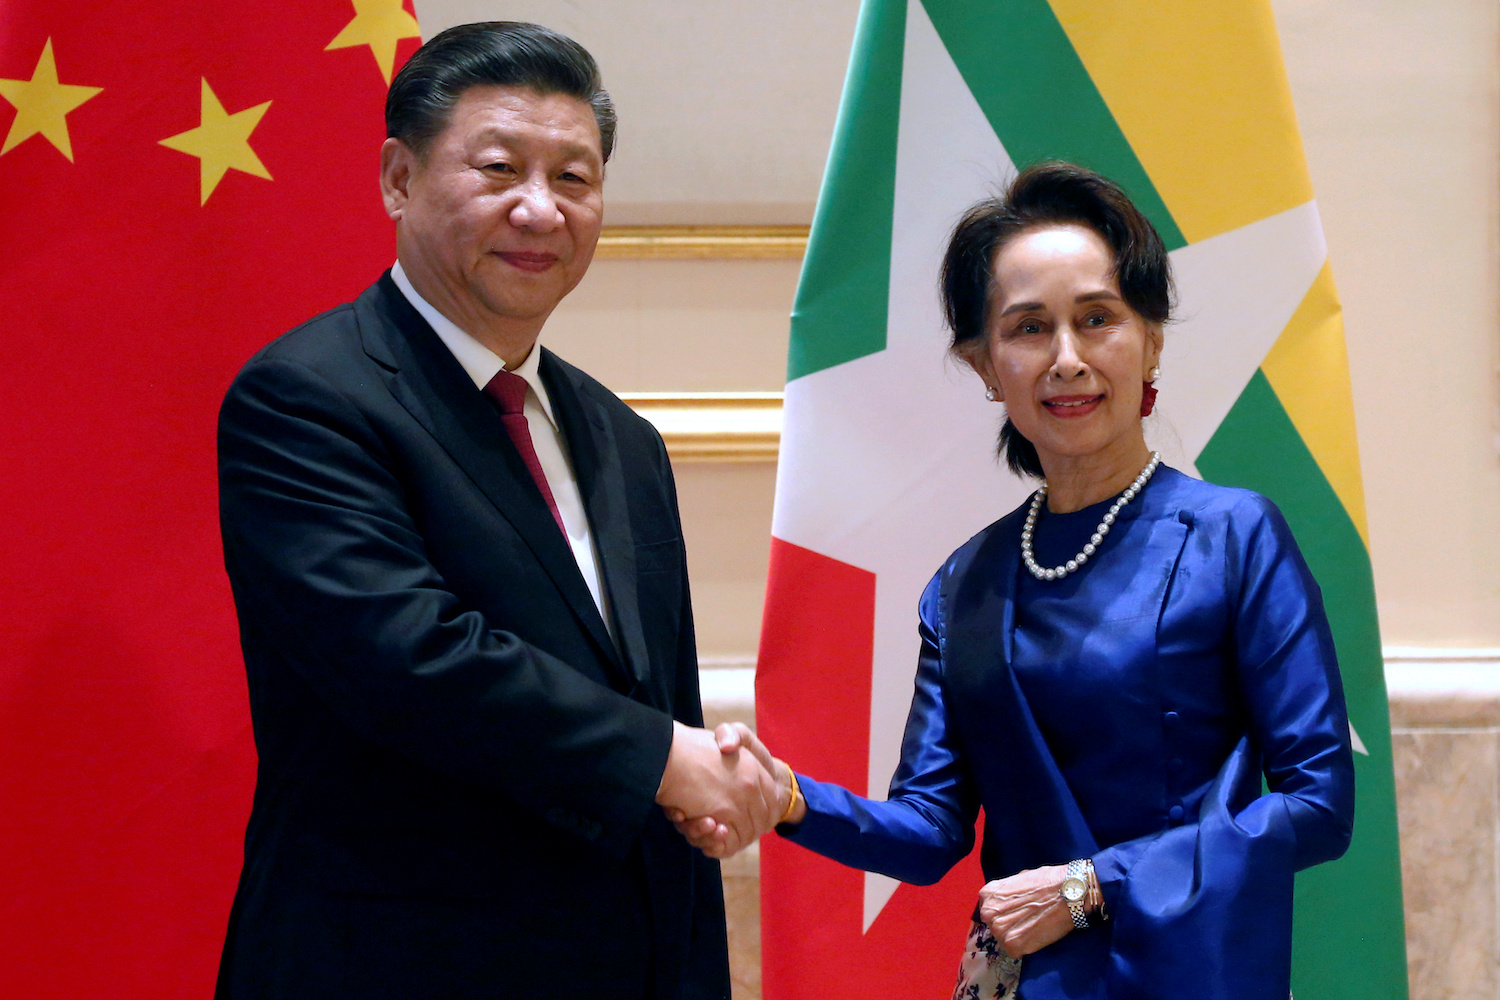 Myanmar State Counsellor Aung San Suu Kyi greets Chinese President Xi Jinping at the Presidential Palace in Nay Pyi Taw on Friday. (Reuters Photo)